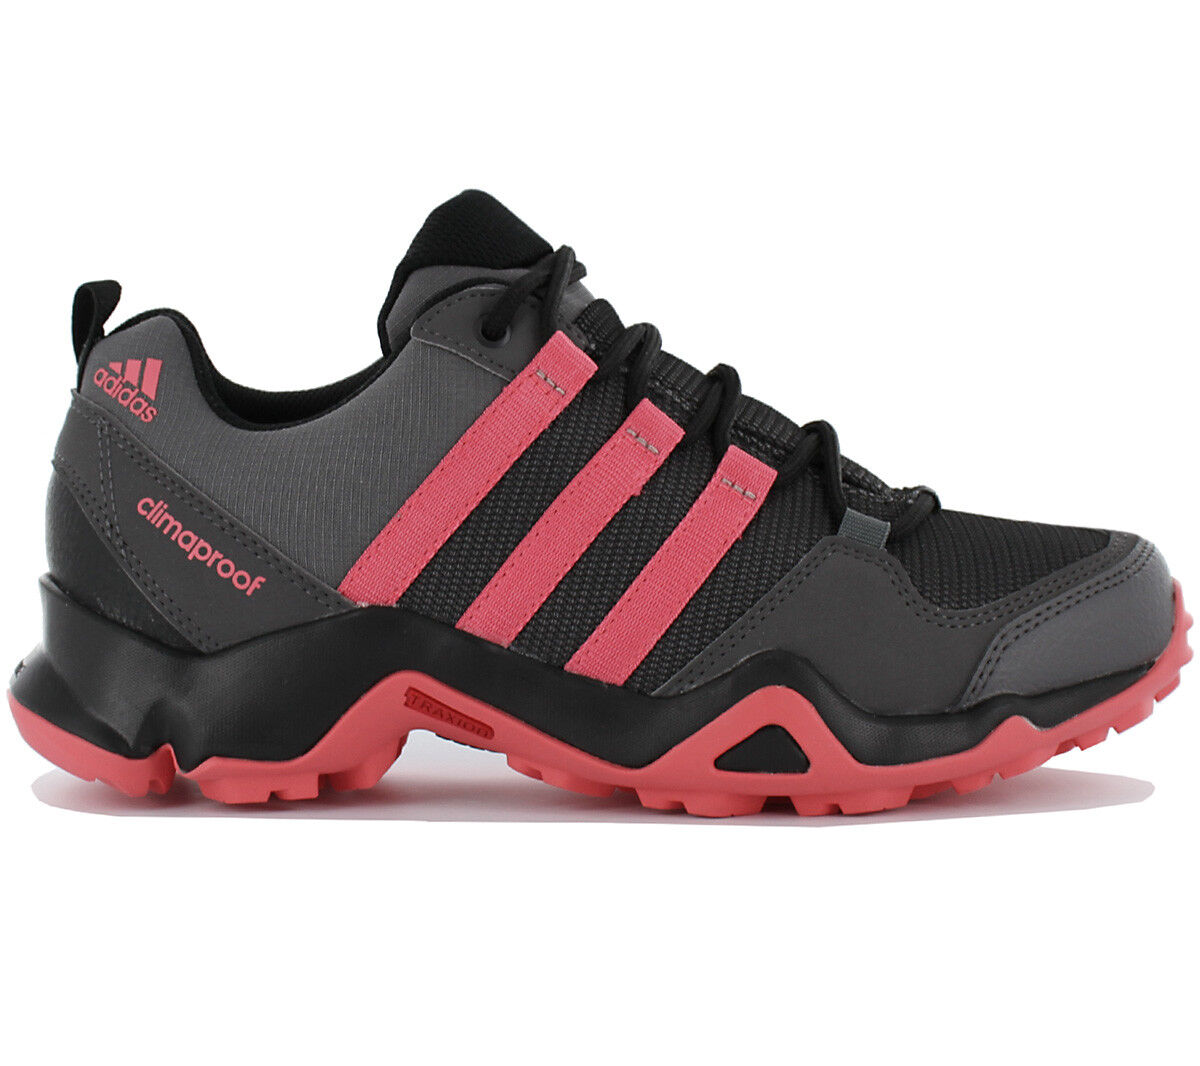 Adidas AX2 Climaproof W-Women's Hiking shoes Trail Running Outdoor BB1681 Ax 2